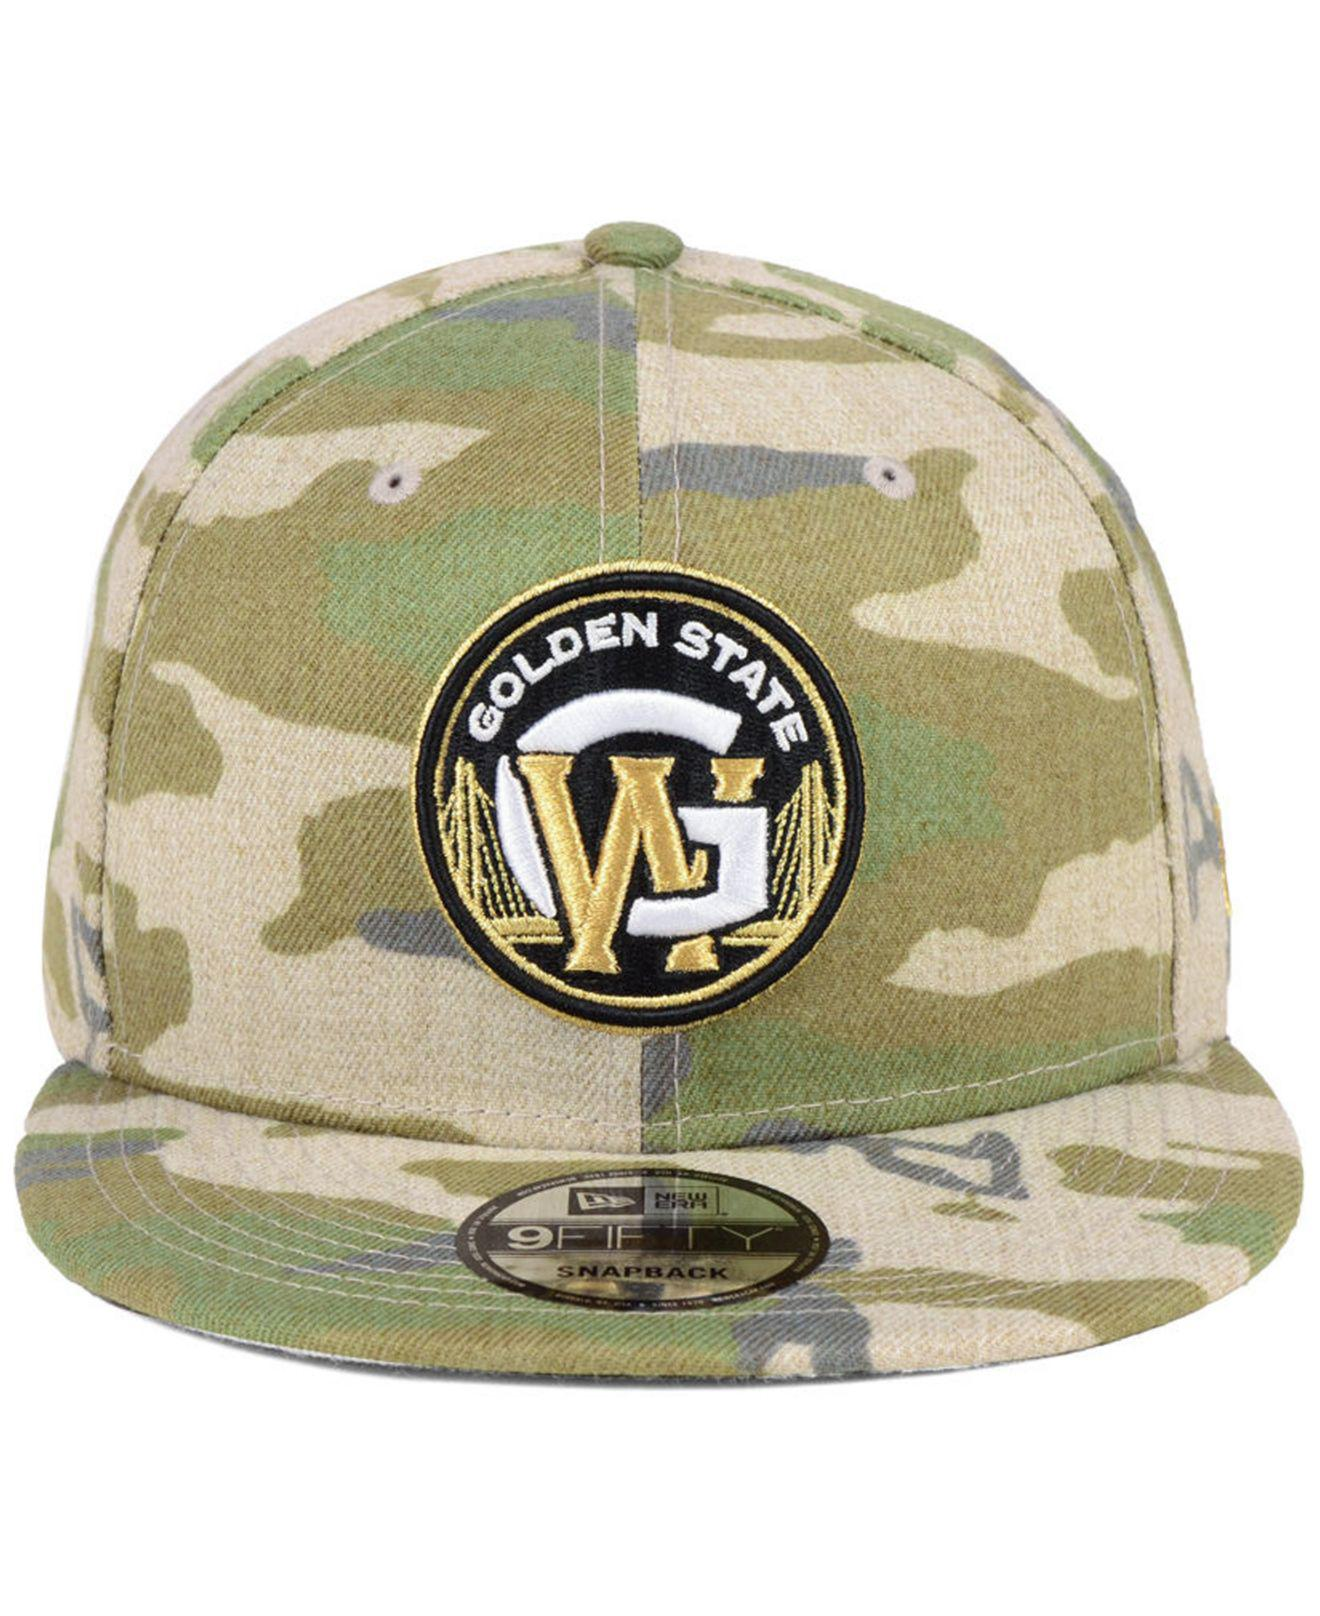 reputable site d6740 b2645 top quality lyst ktz golden state warriors combo camo 9fifty snapback cap  in green for men